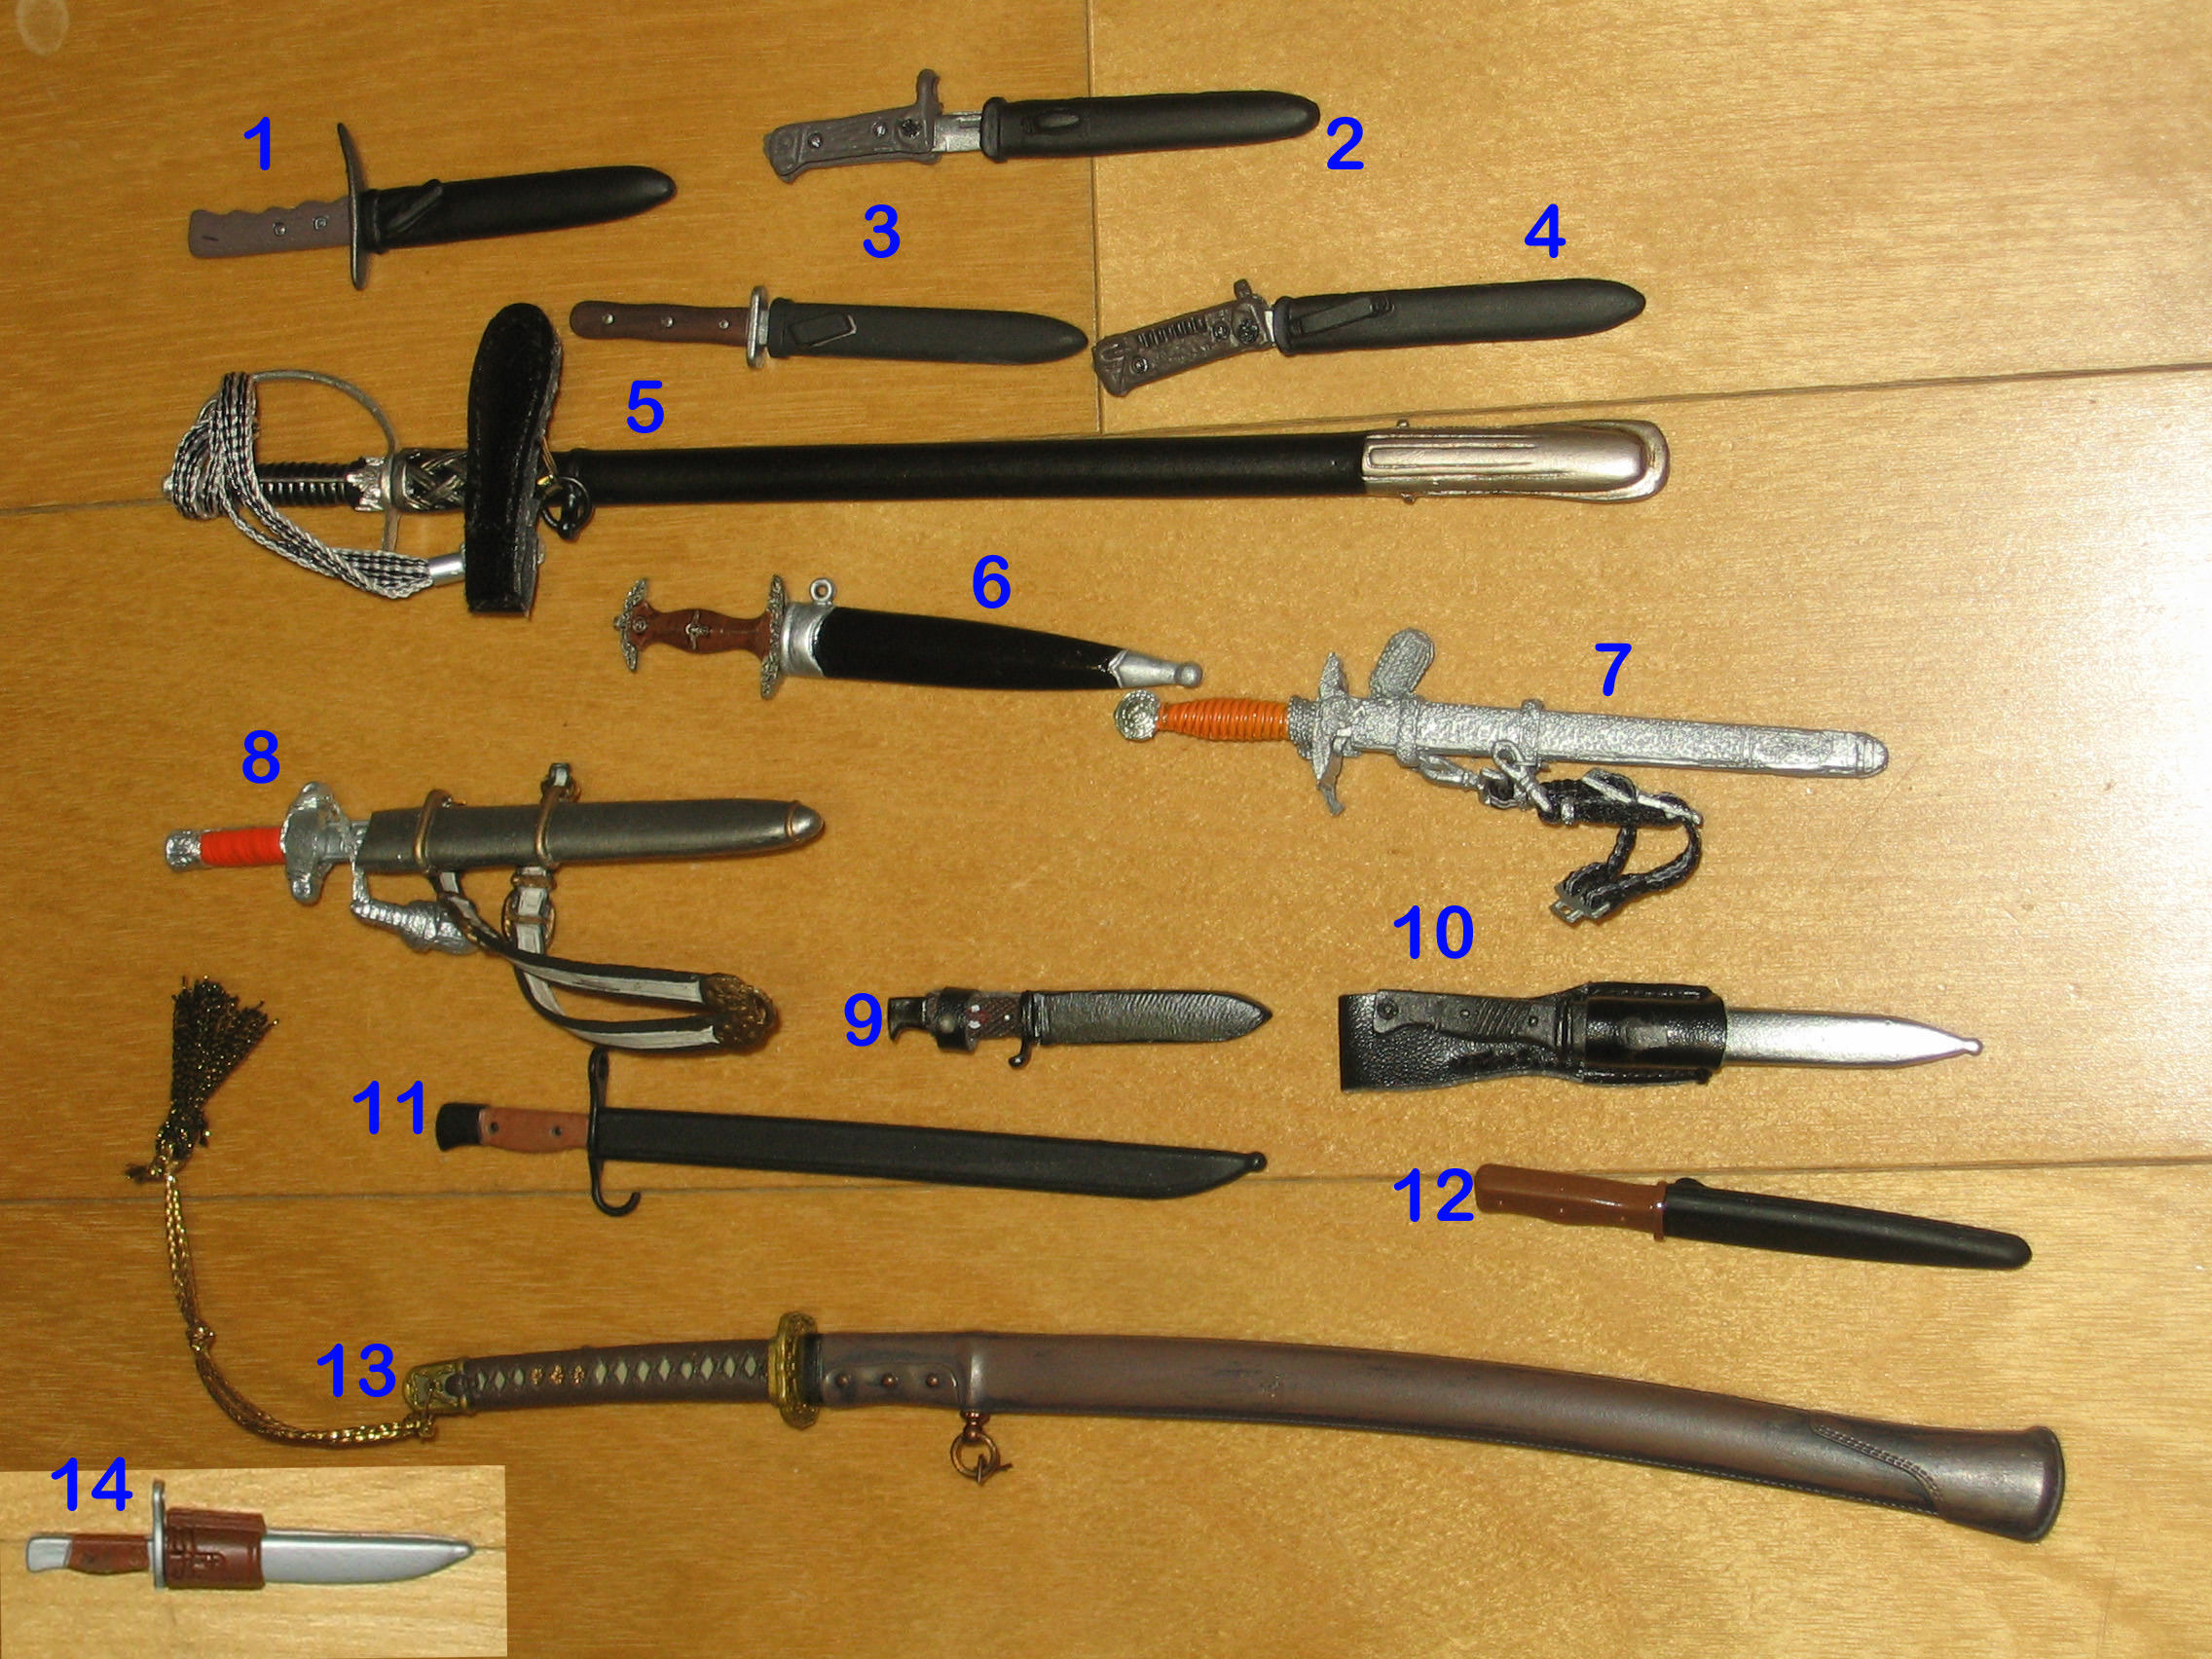 My Collection of WWII to Modern Weapons - General Discussion